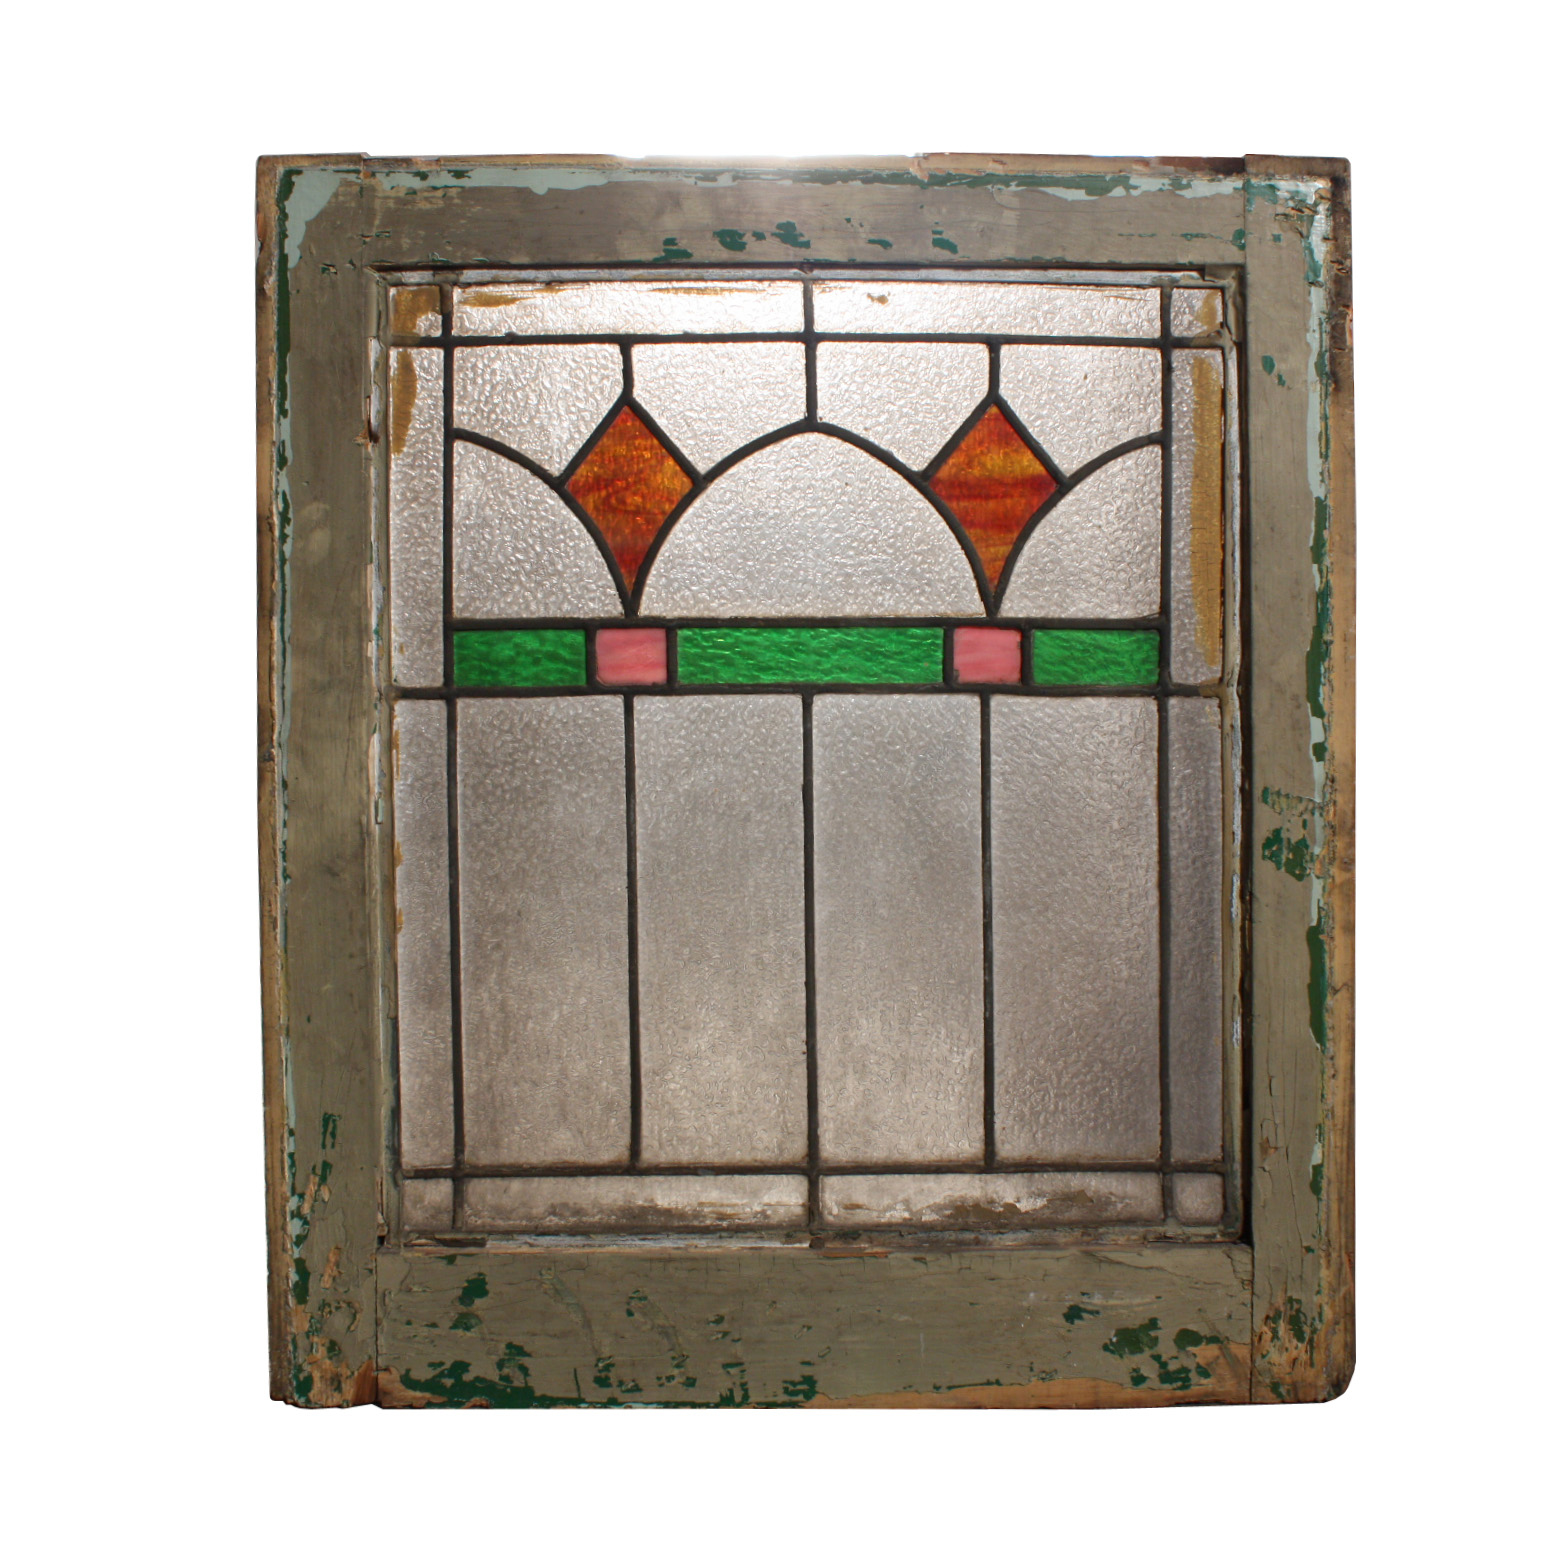 Lovely Antique American Stained Glass Window With Arches